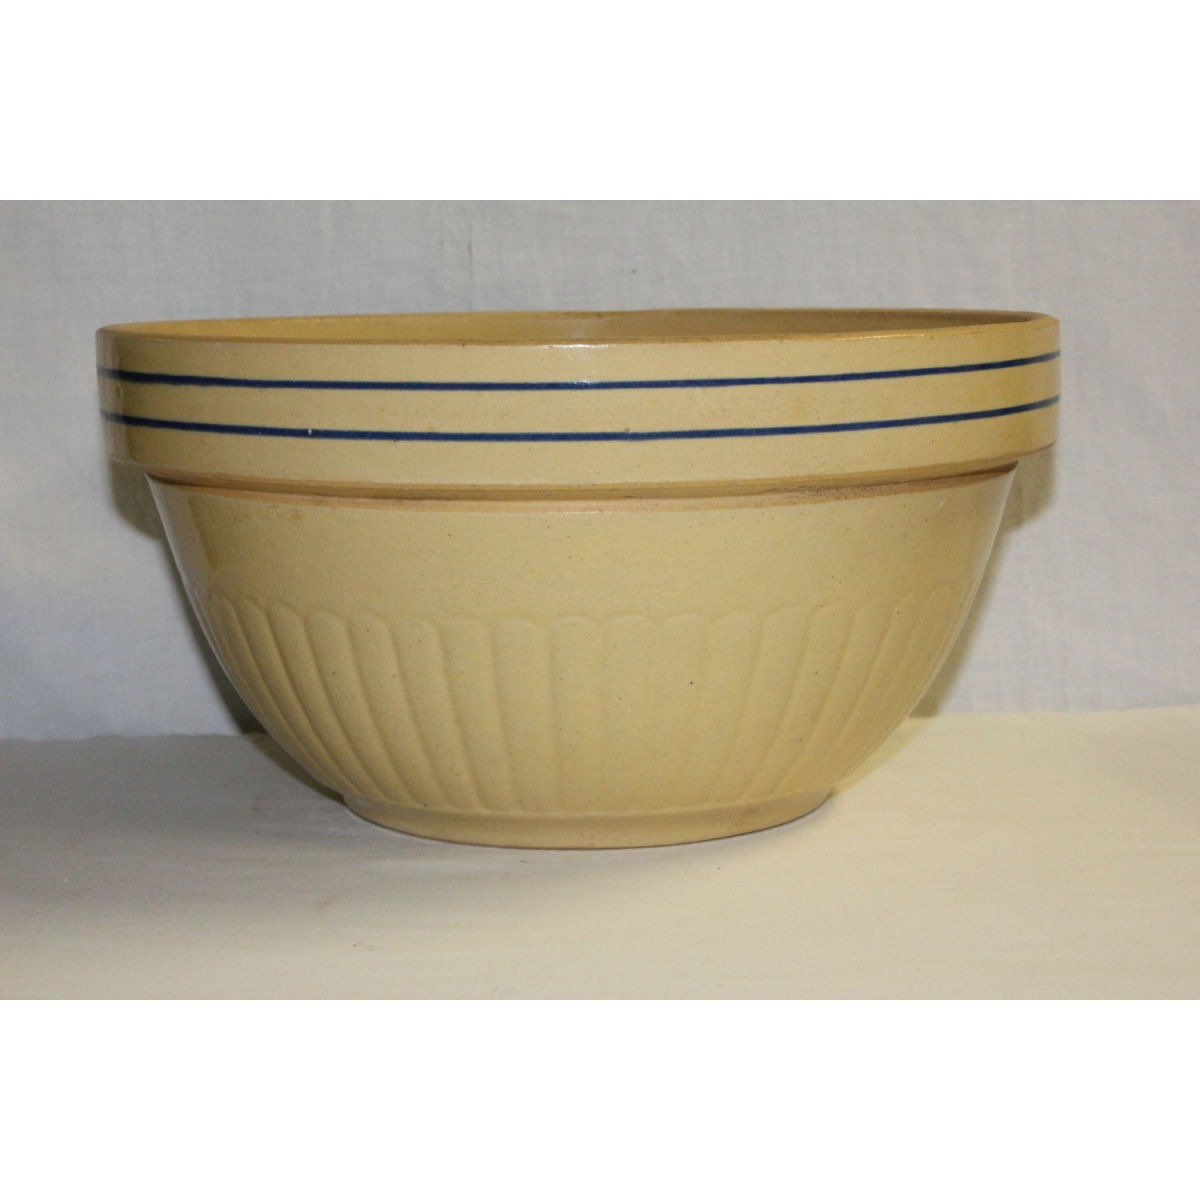 Simply Gorgeous Cobalt Blue Banded Red Wing Large Yellowware Bowl